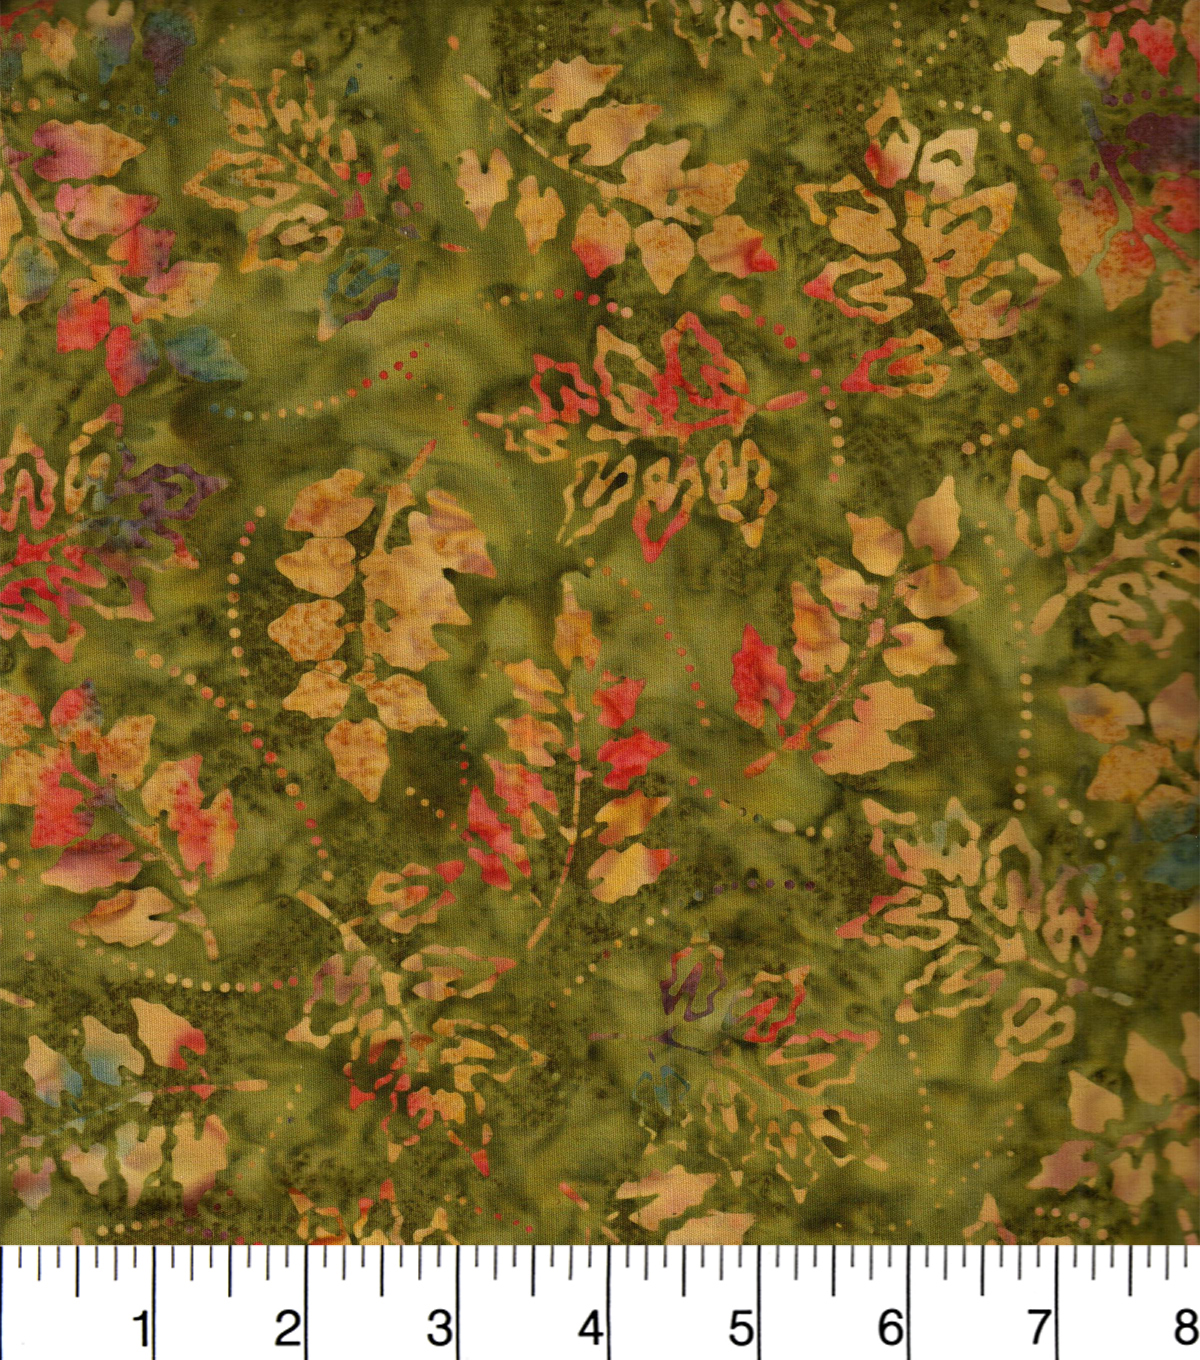 Legacy Studio Indonesian Batiks Cotton Fabric -Tossed Leaves Green